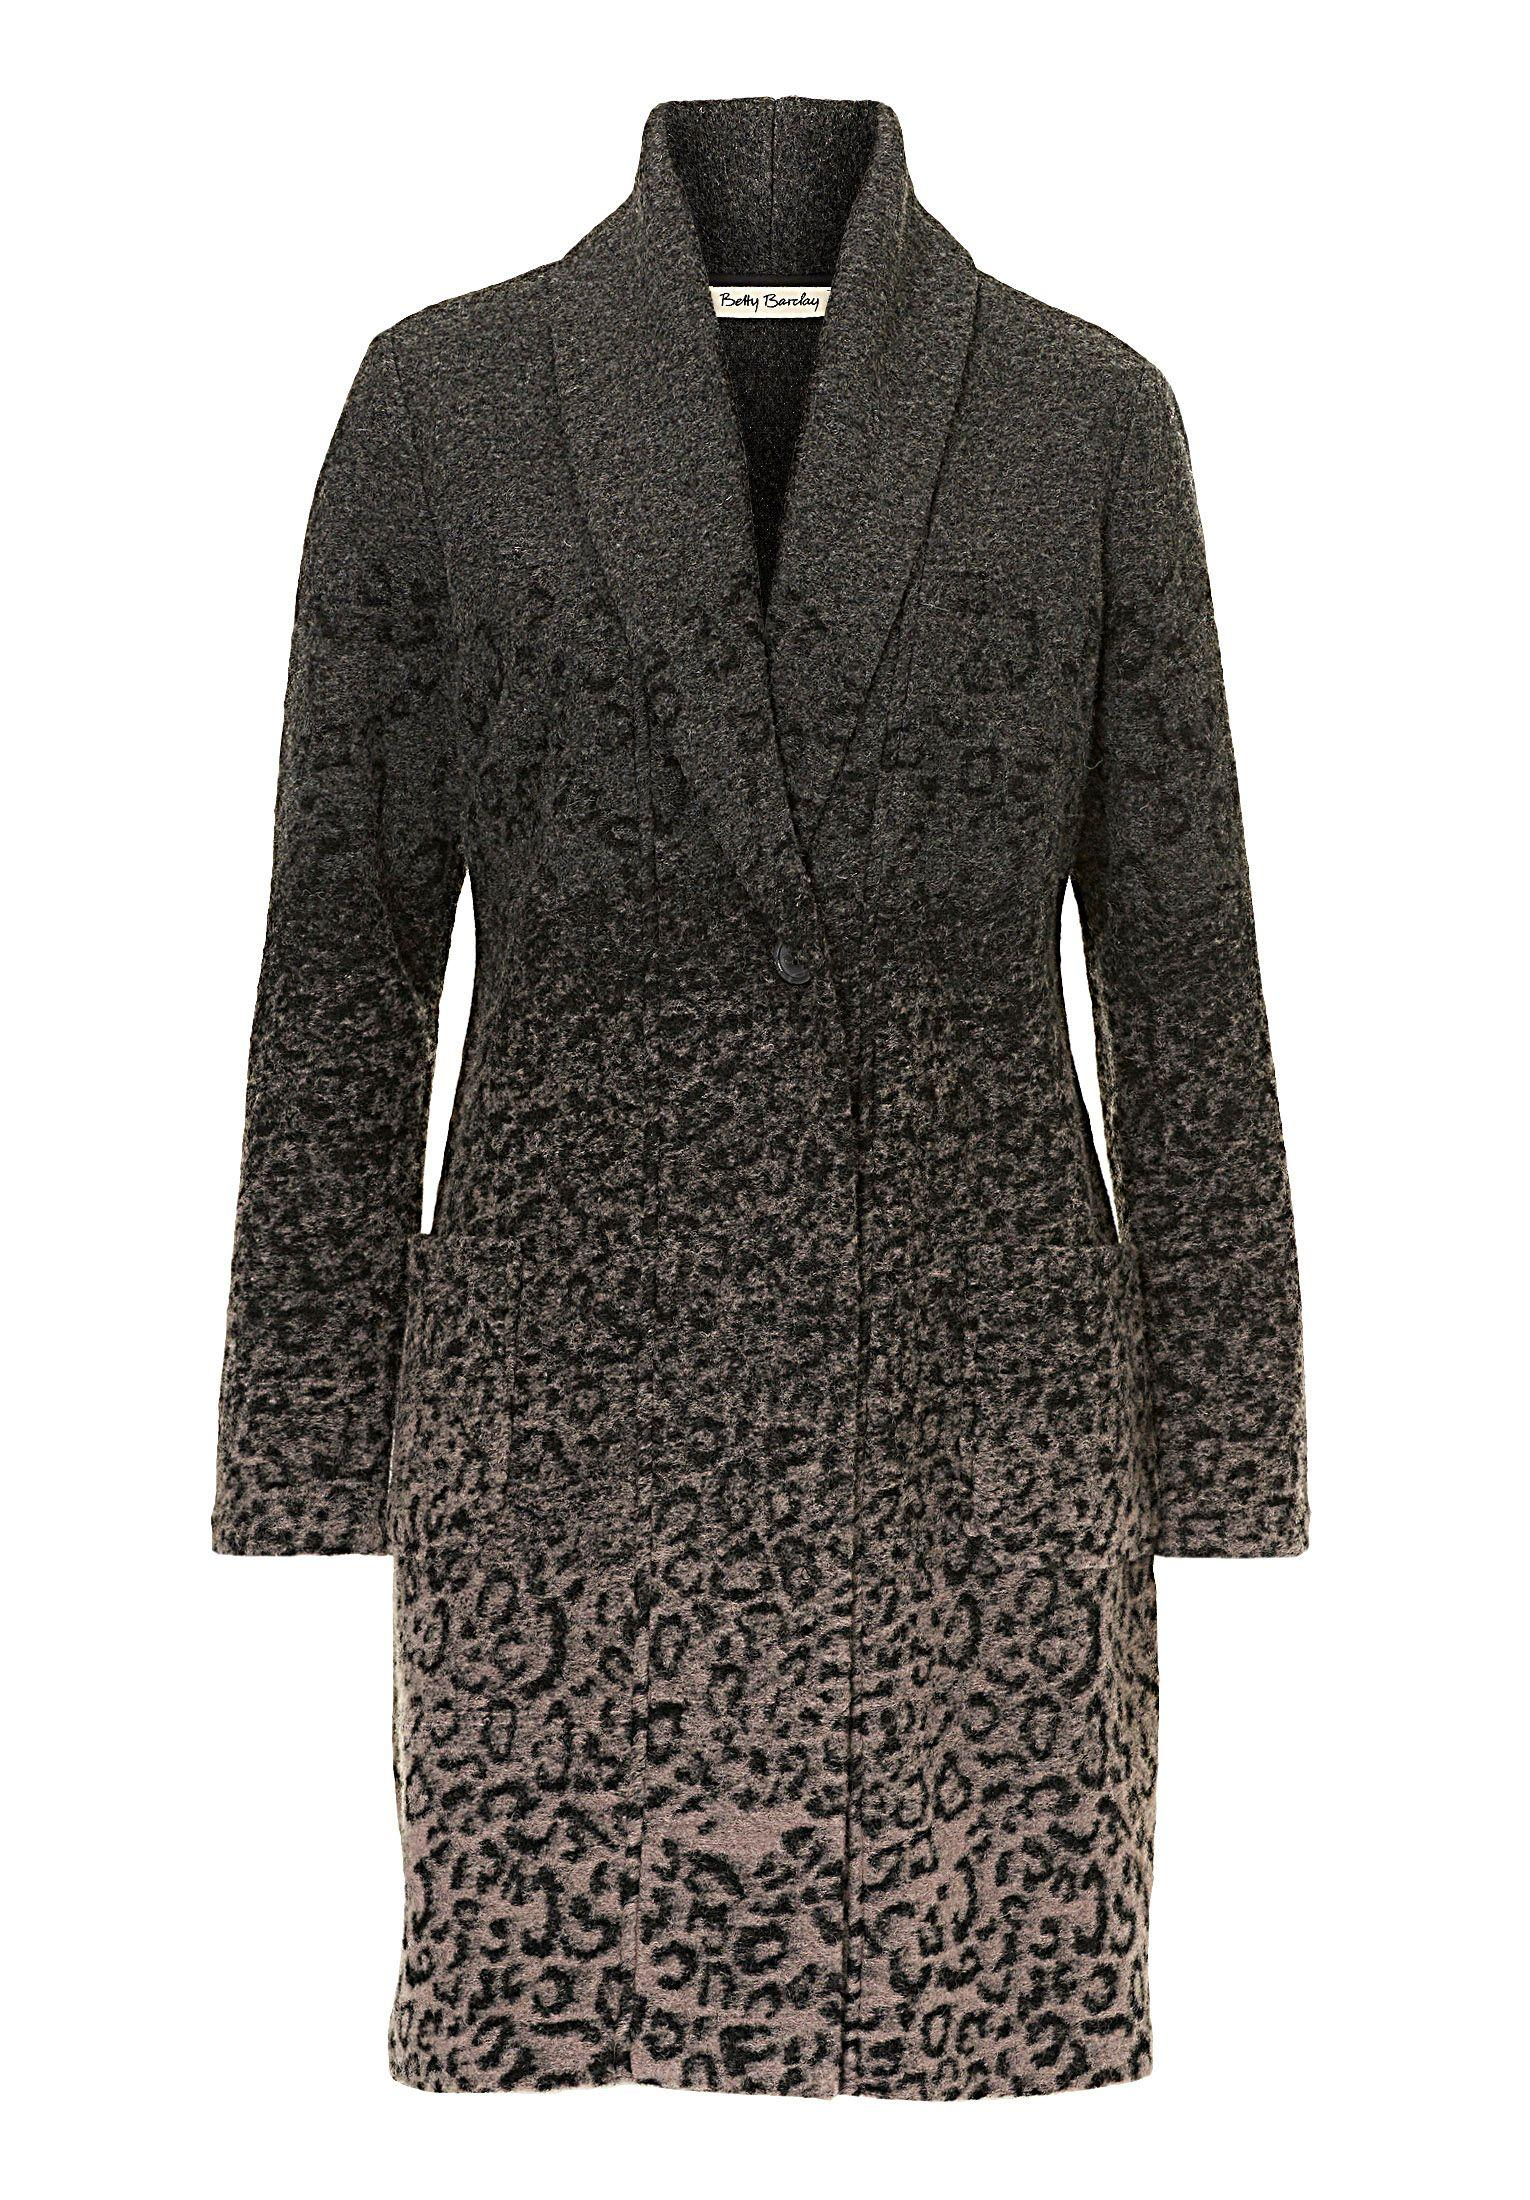 betty barclay unlined animal print jacket in gray lyst. Black Bedroom Furniture Sets. Home Design Ideas